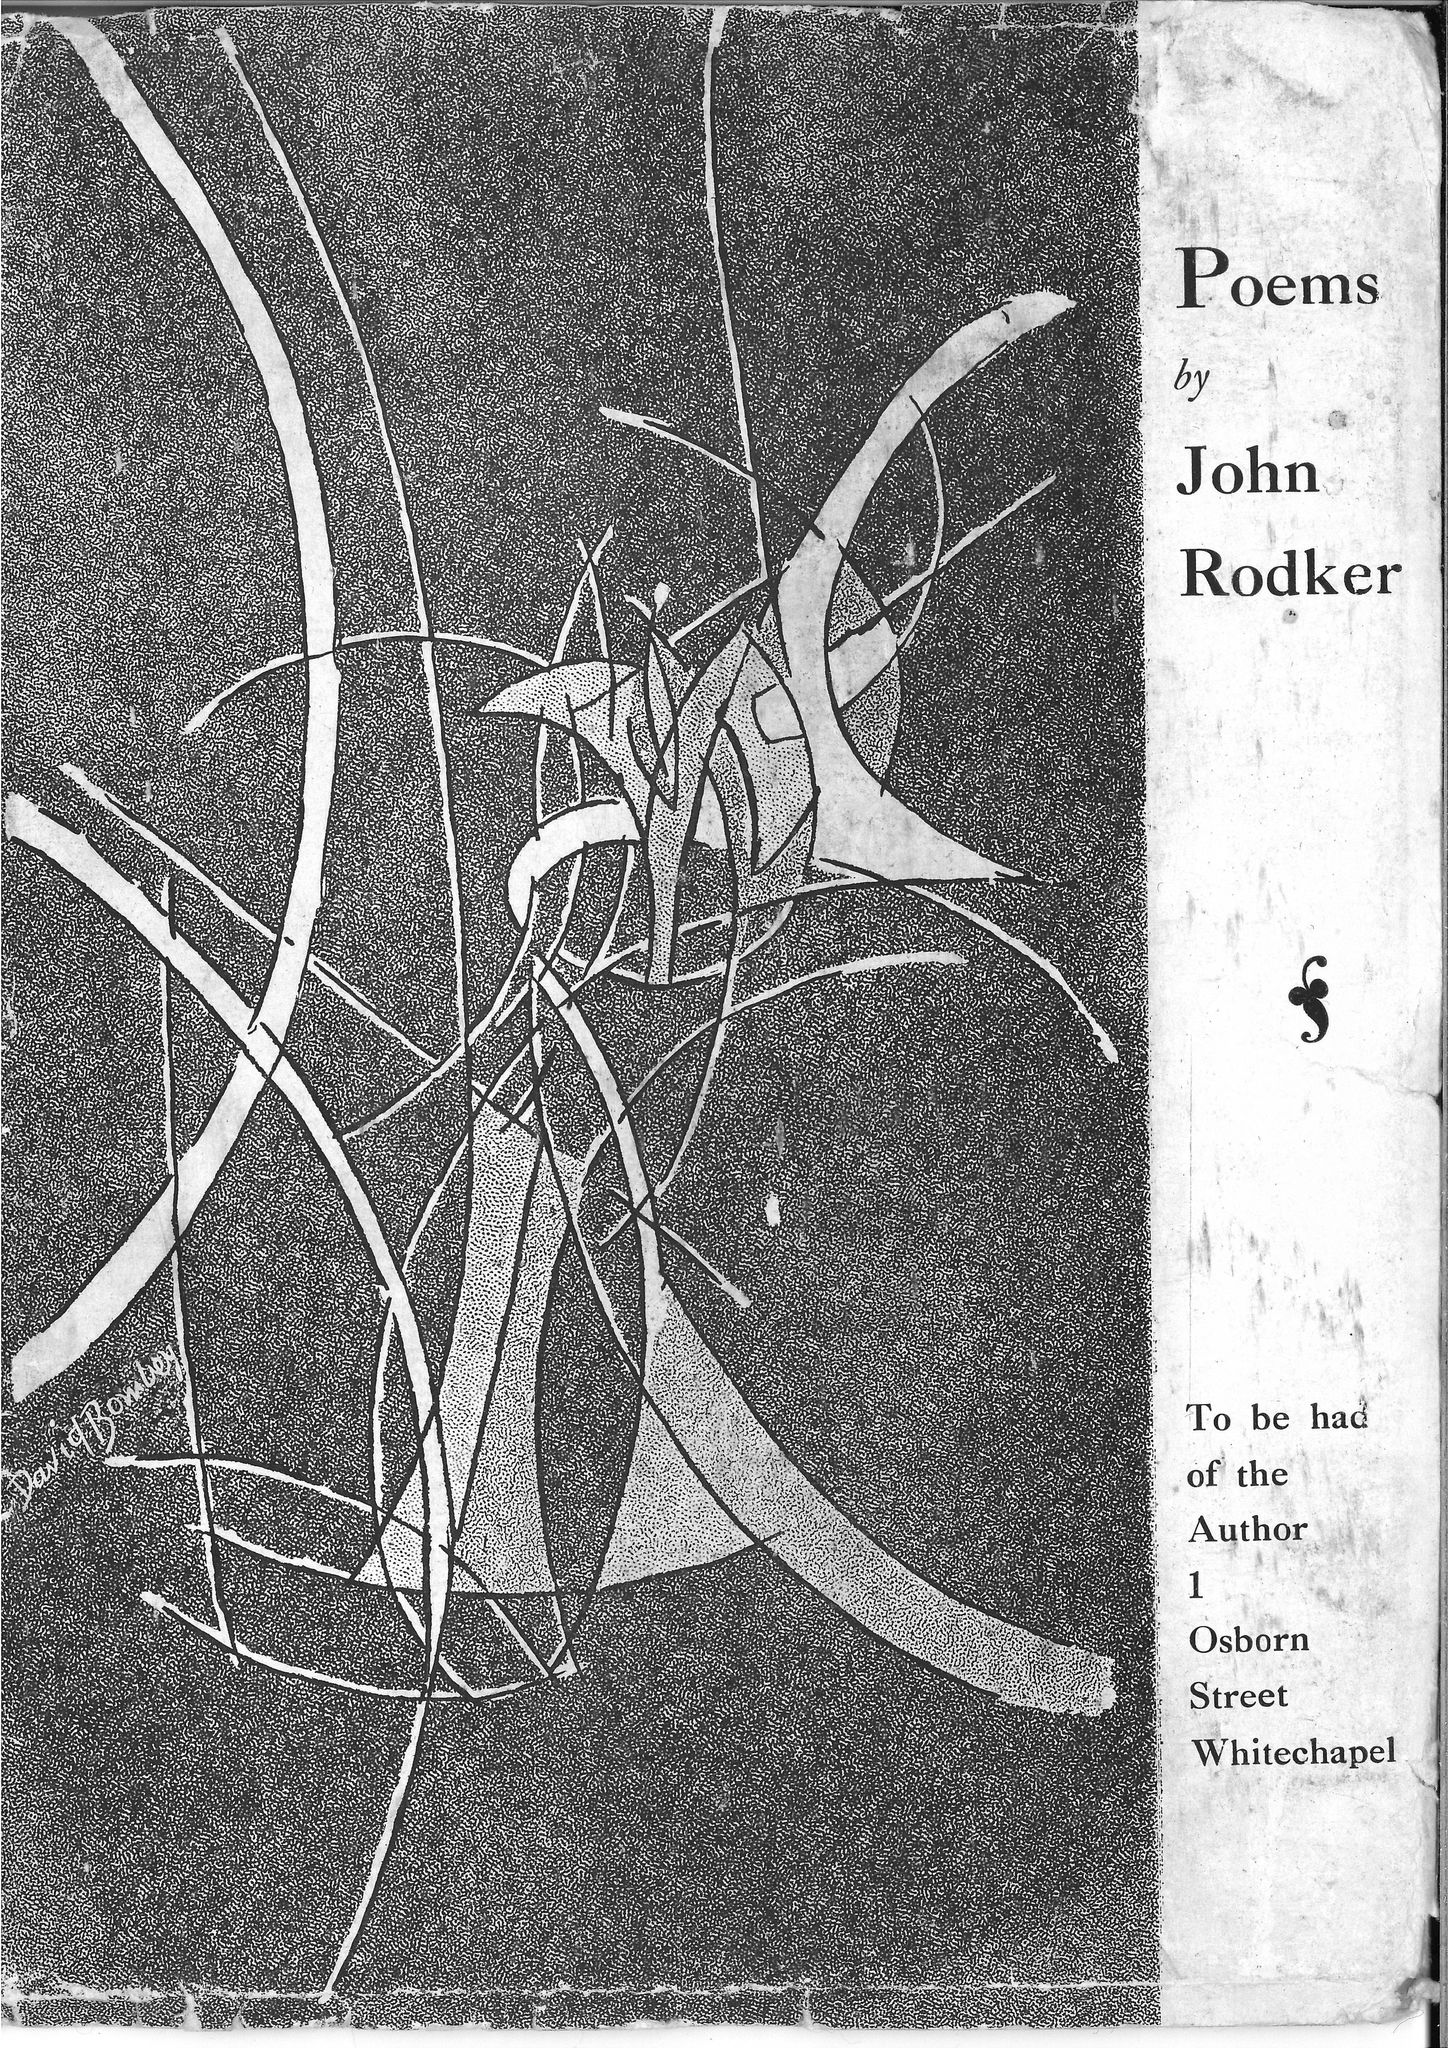 Cover of John Rodker's Poems